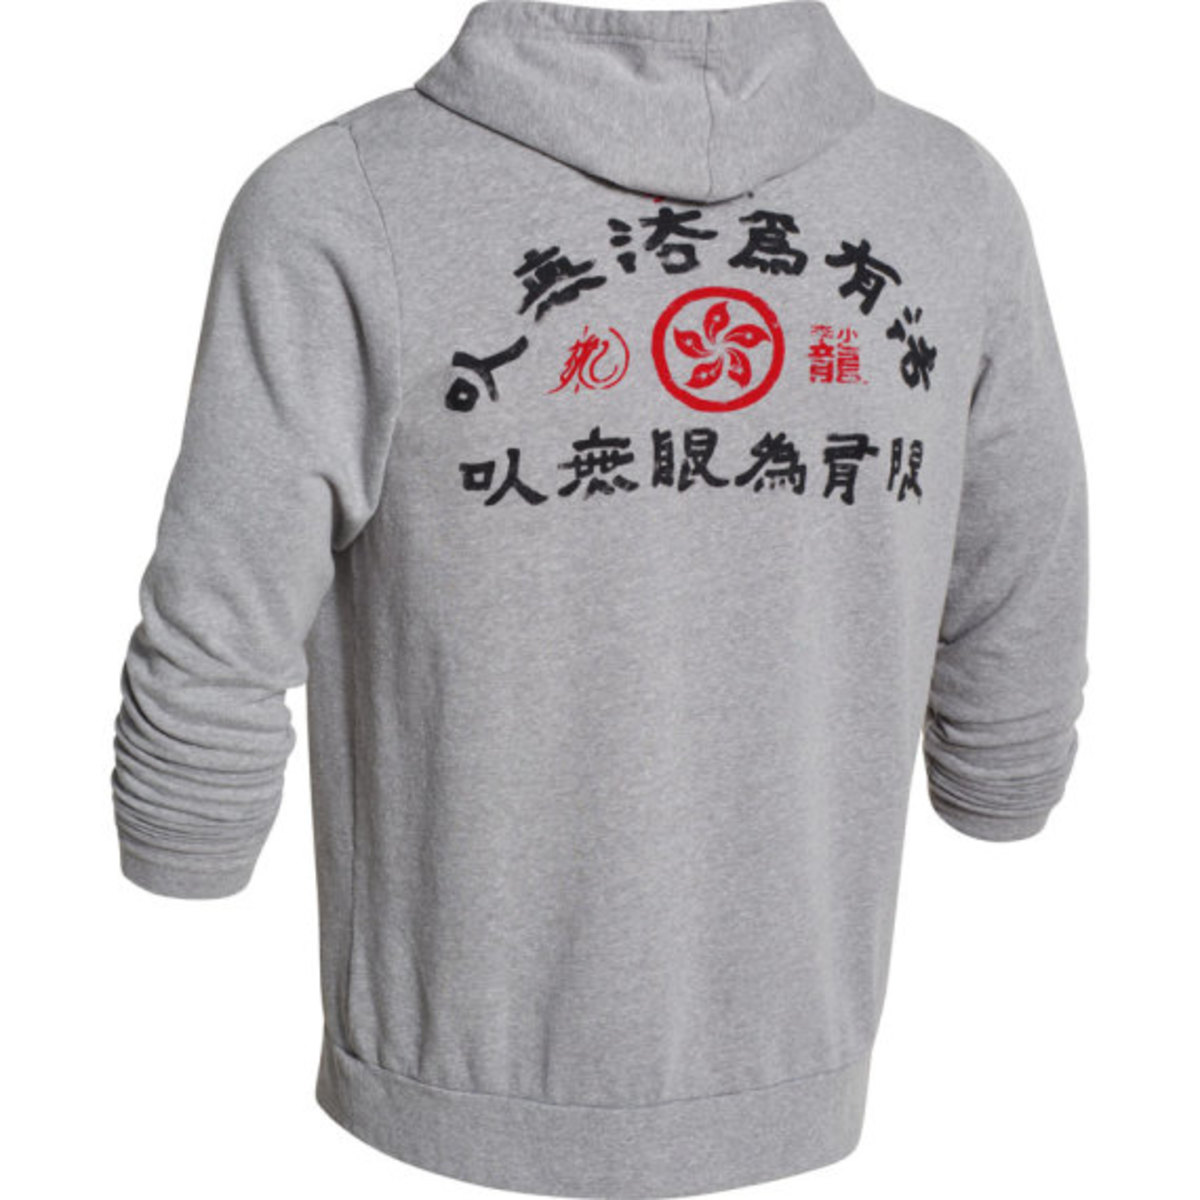 under-armour-roots-of-right-bruce-lee-collection-07